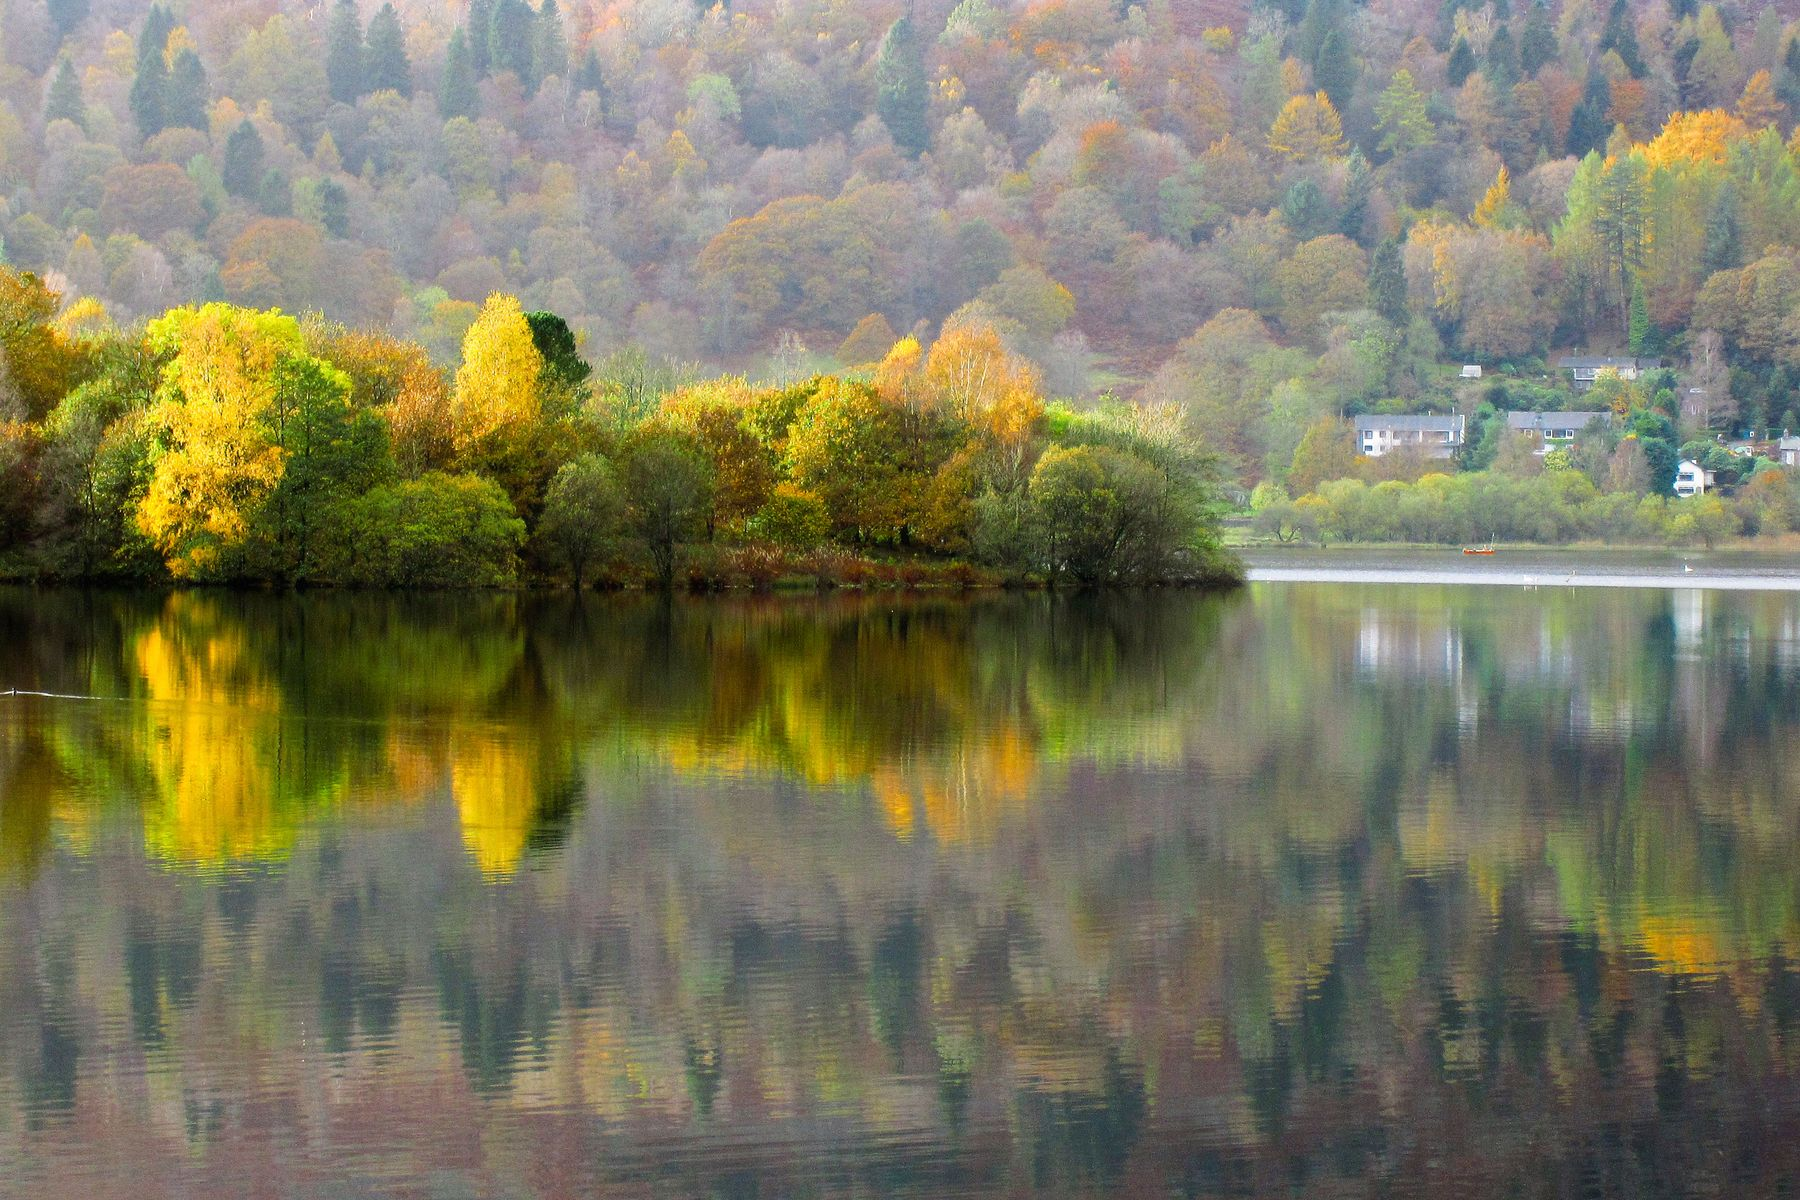 In the Lake District, Grasmere is one of the prettiest settings for an English village